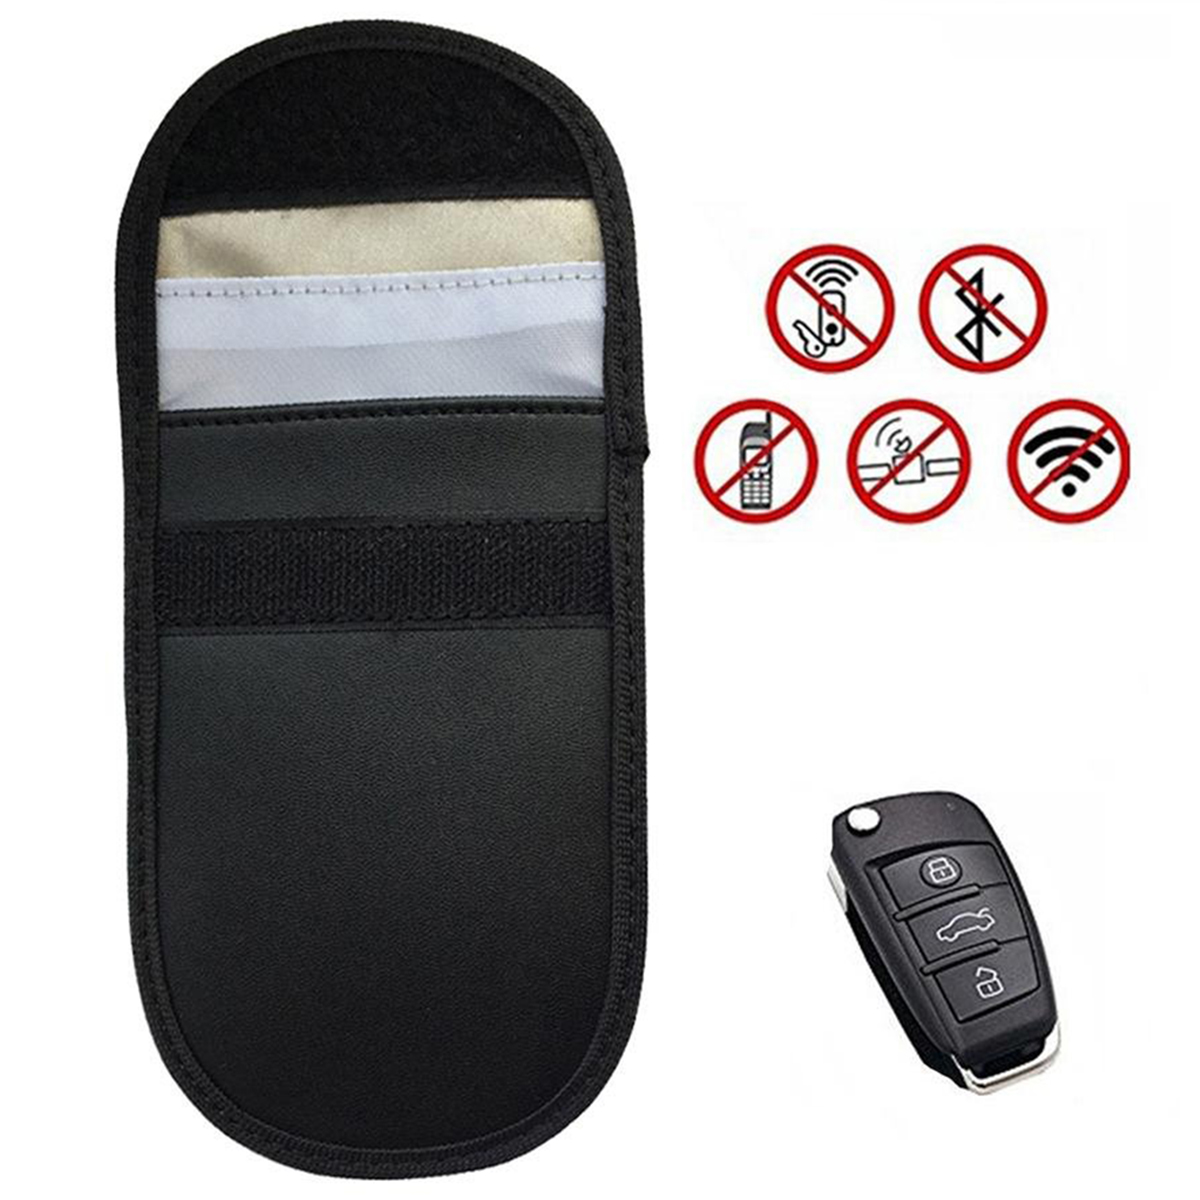 1pc/2pcs PU Leather Portable Signal Blocker Car Key Case With Hook Buckle Faraday Cage Keyless Entry Fob Pouch RFID Blocking Bag